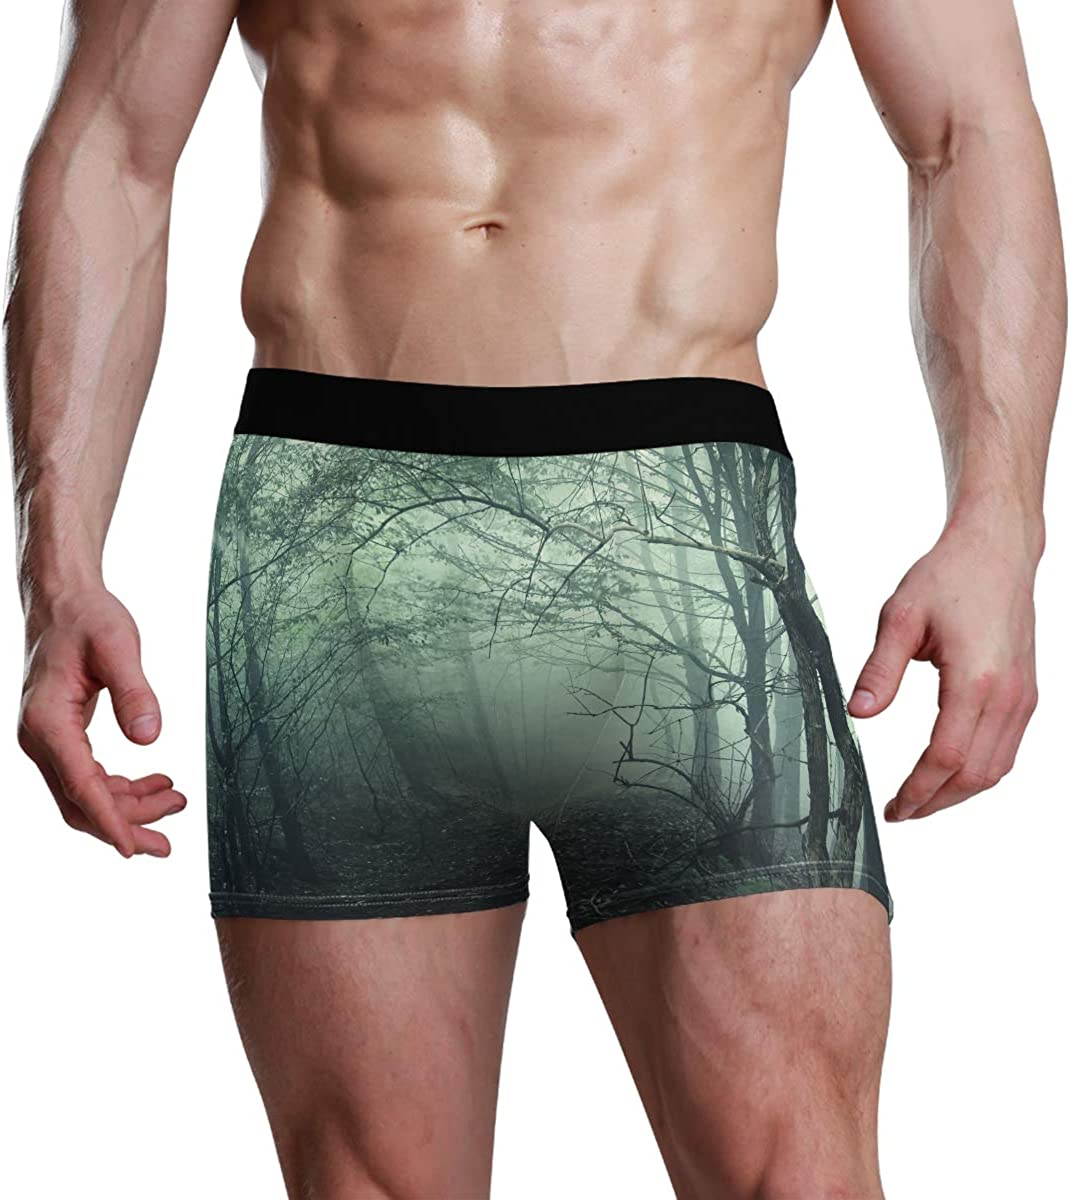 Men's Underwear Fog in The Forest Breathable Boxer Briefs Low Rise Long Leg